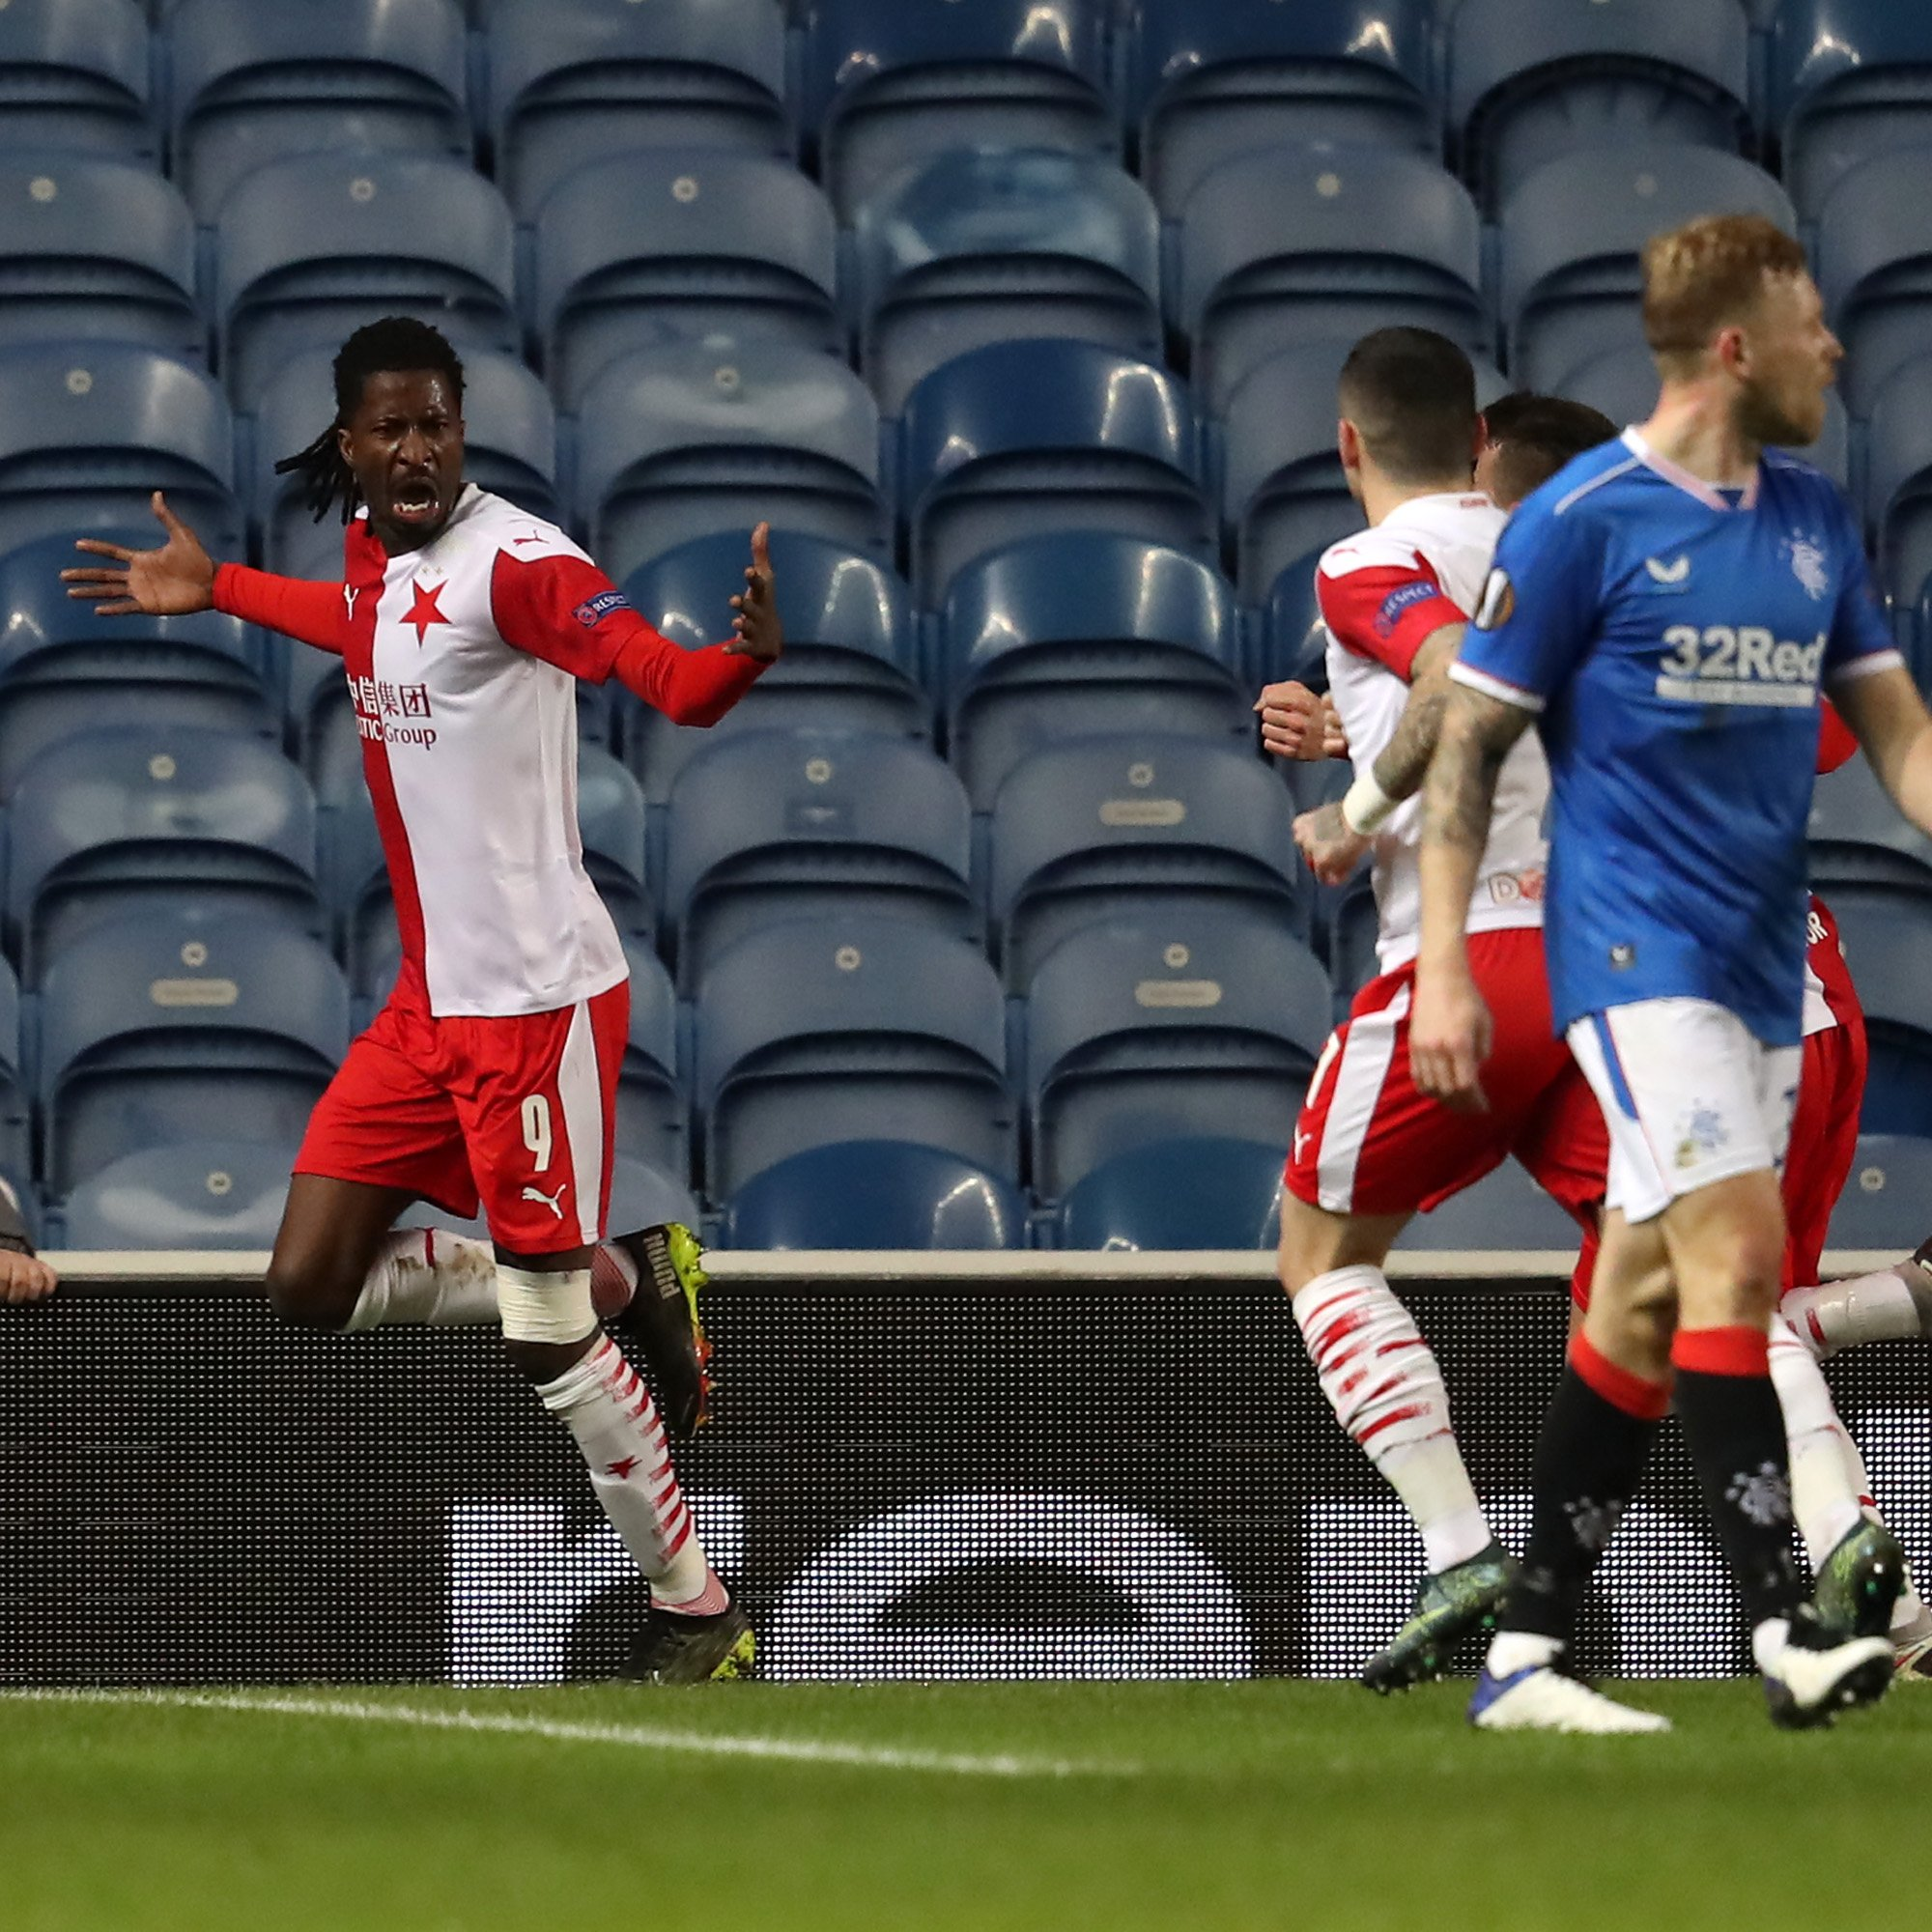 Olayinka Savours Slavia Prague's 'Excellent' Away Win Against Rangers